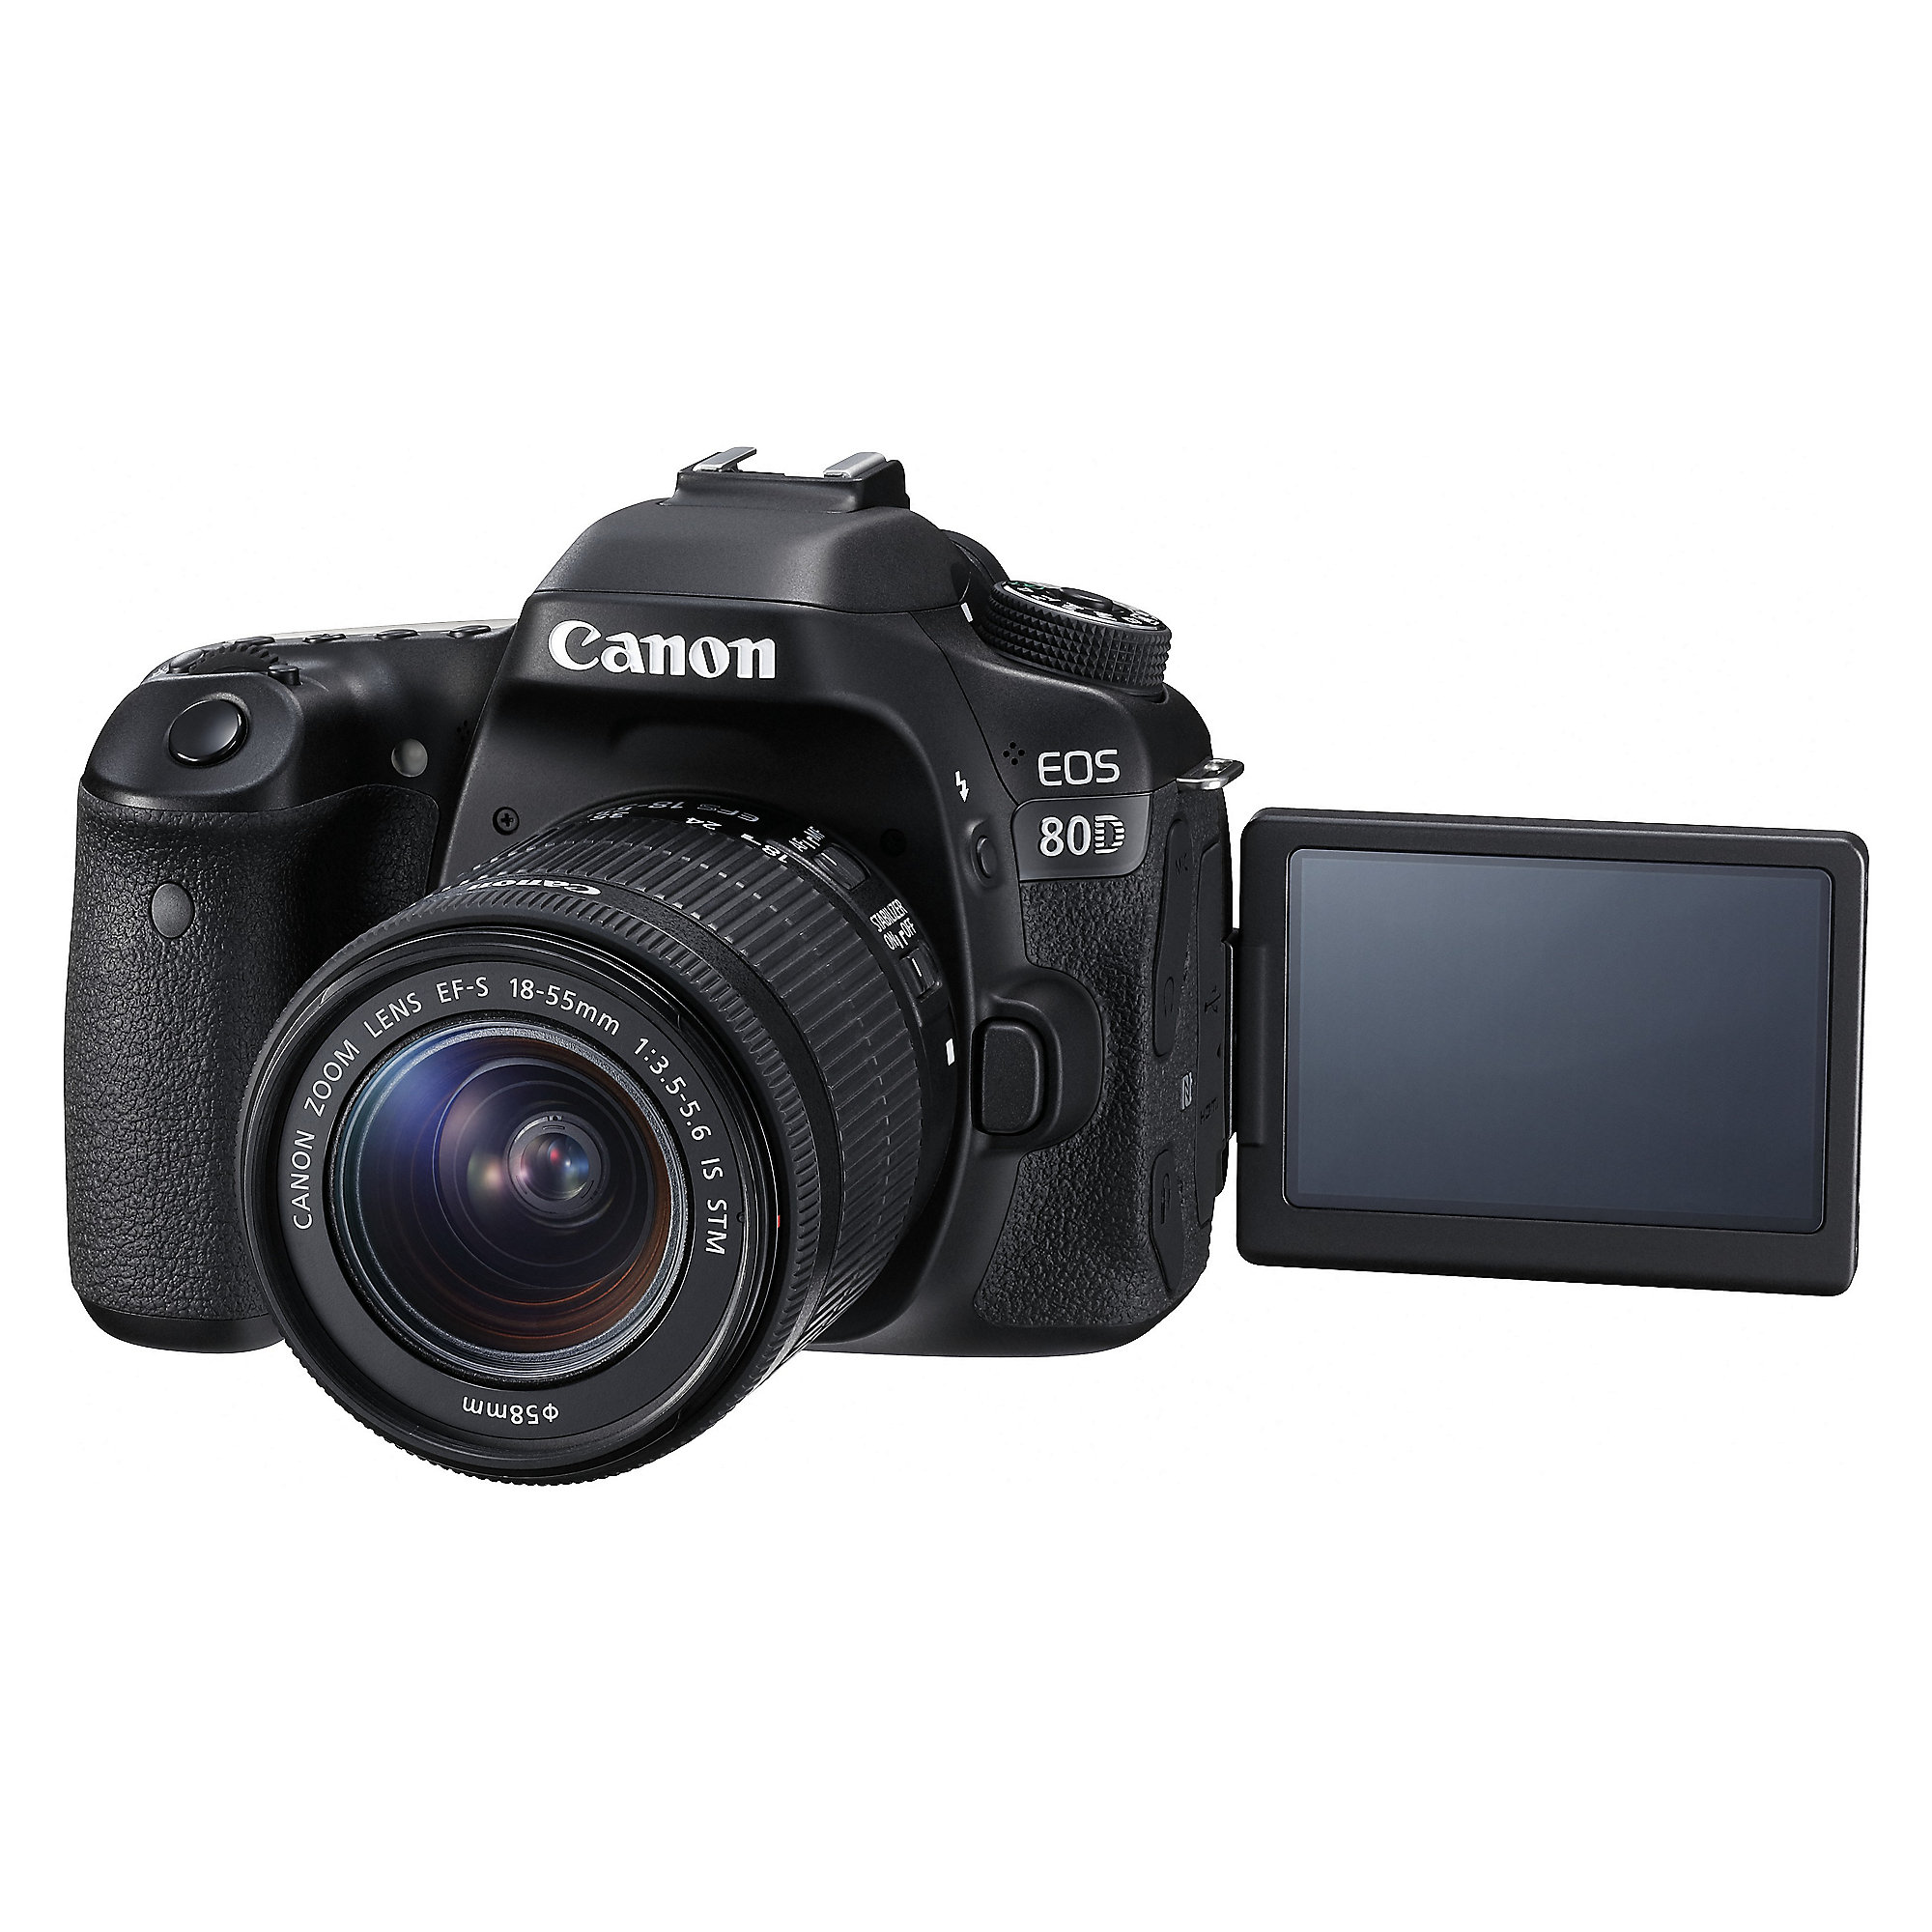 Canon EOS 80D Kit 18-55 IS STM Spiegelreflexkamera